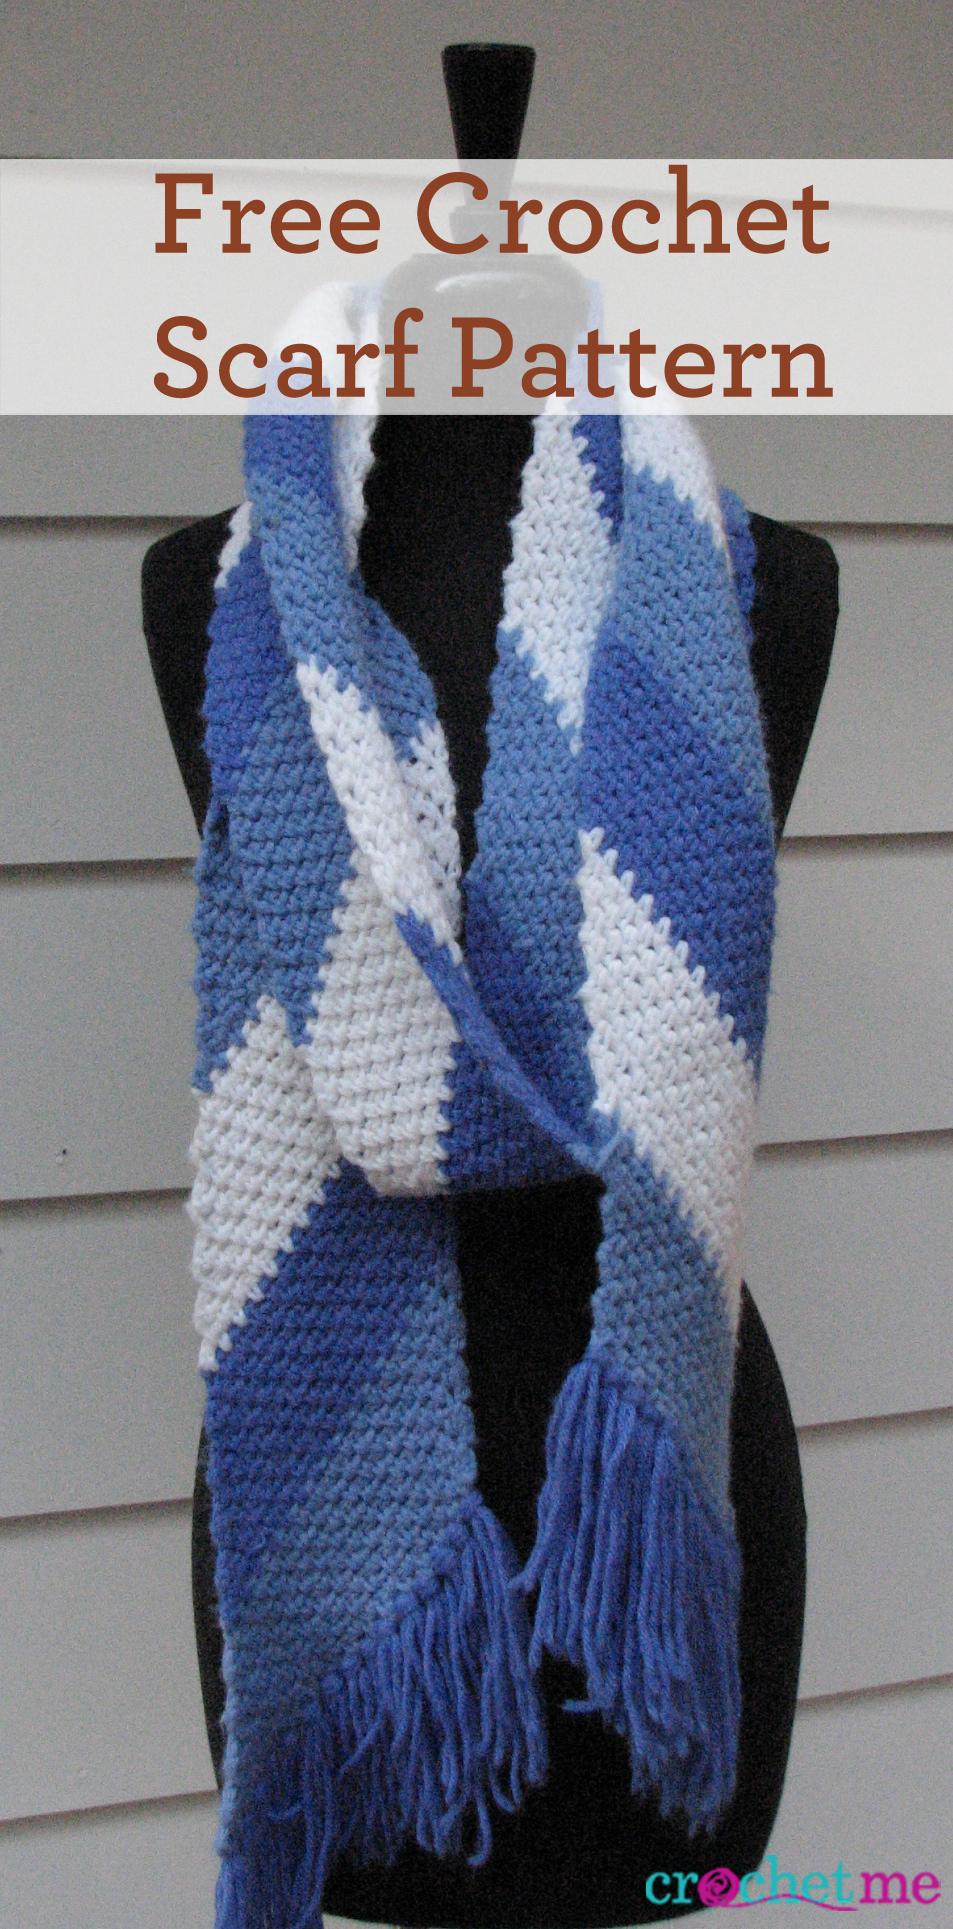 Simple Scarf Knitting Patterns For Beginners Free Crochet Simple Striped Scarf Pattern Interweave